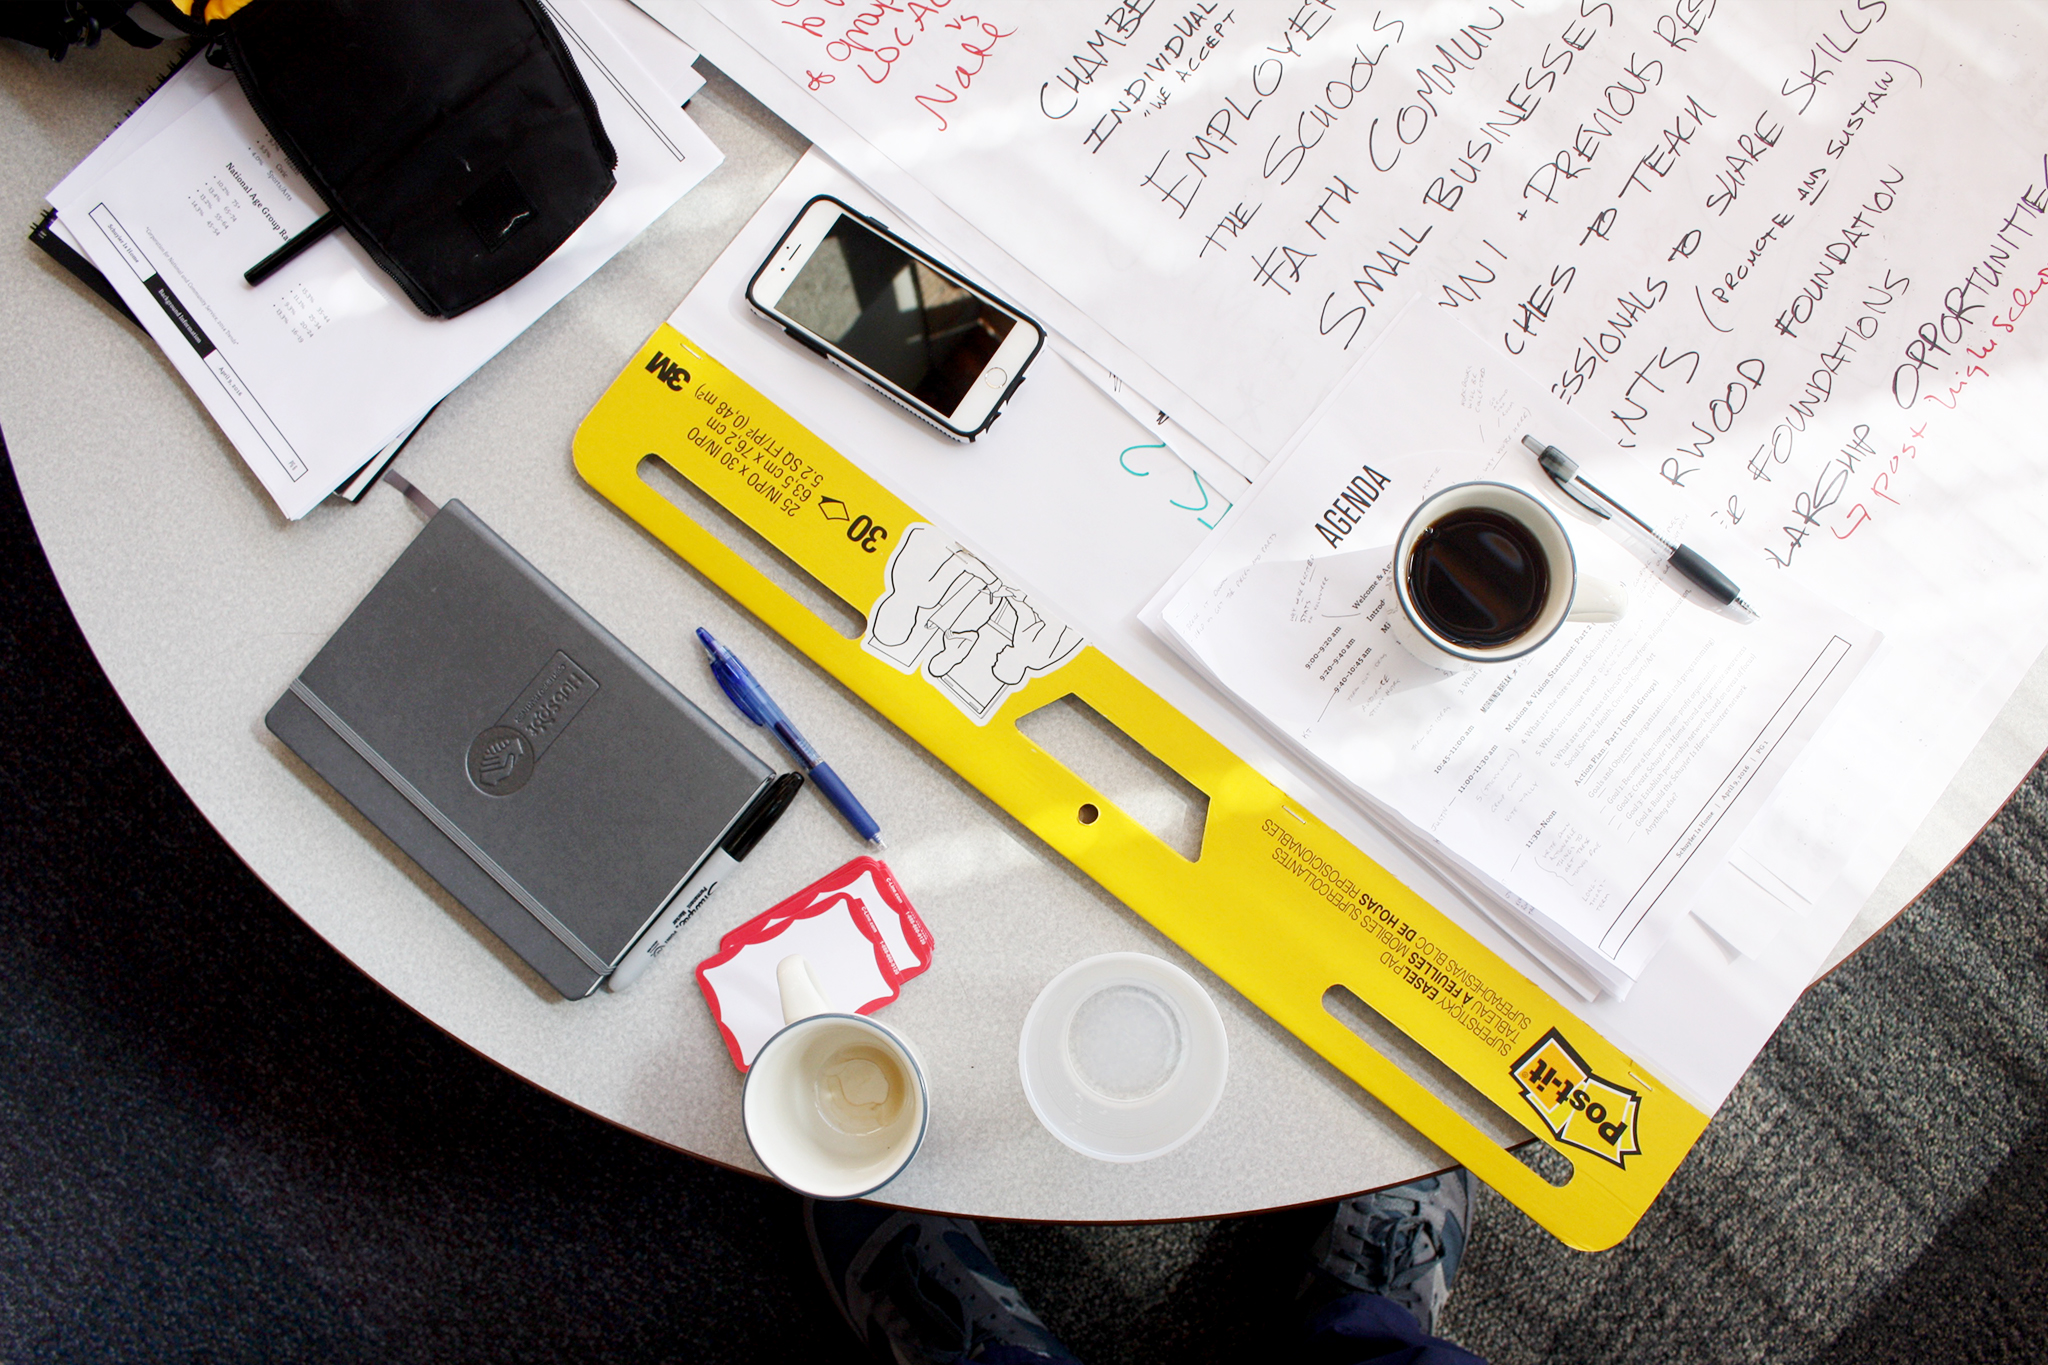 TOOLS: Large easel pads, agendas, workbooks, notes, sharpies, name tags, iPhone, coffee, etc.